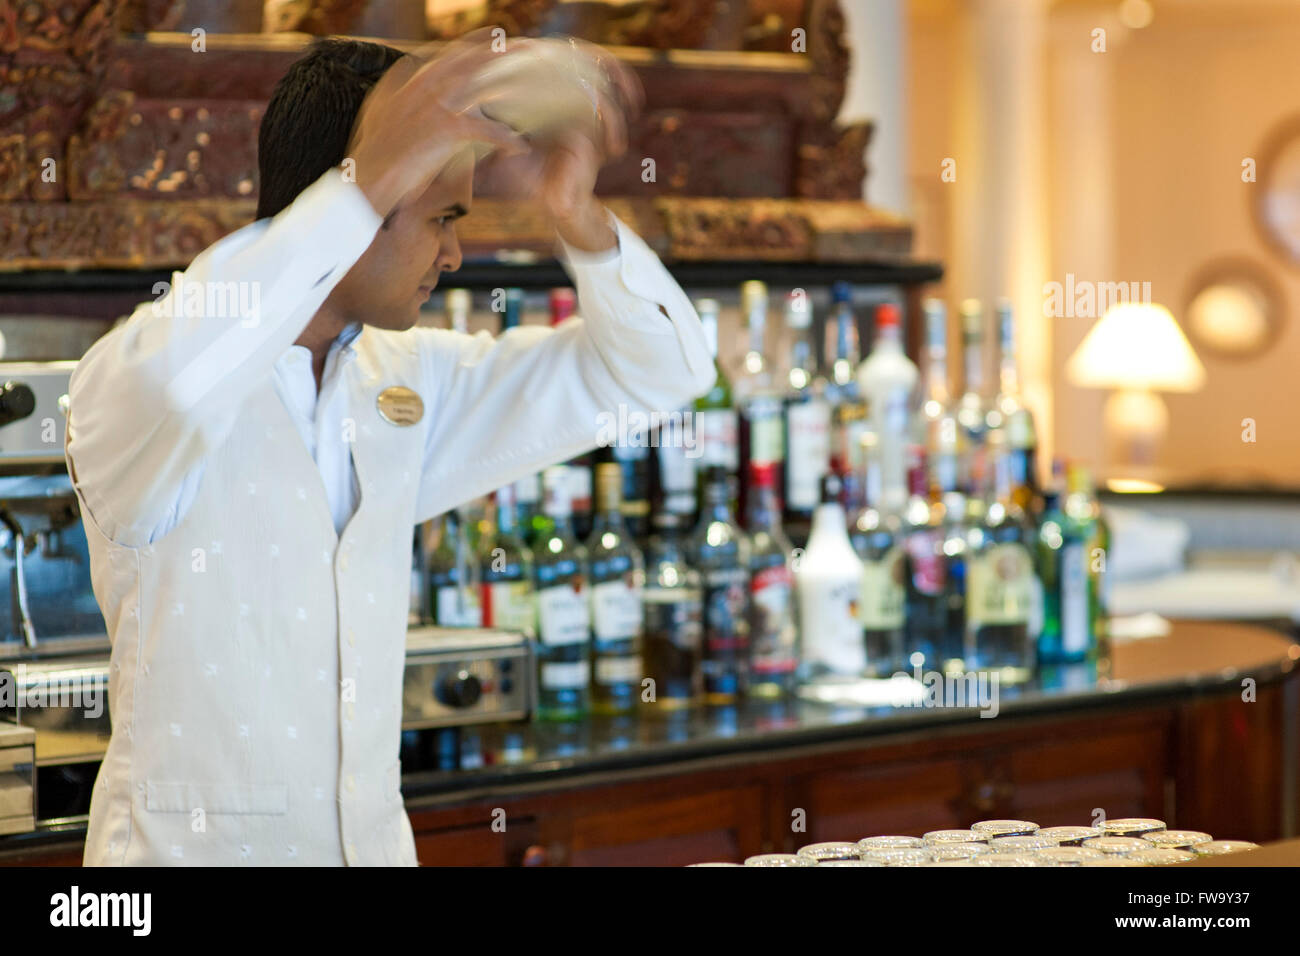 Bartender preparing a cocktail at the Residence hotel in Mauritius. - Stock Image